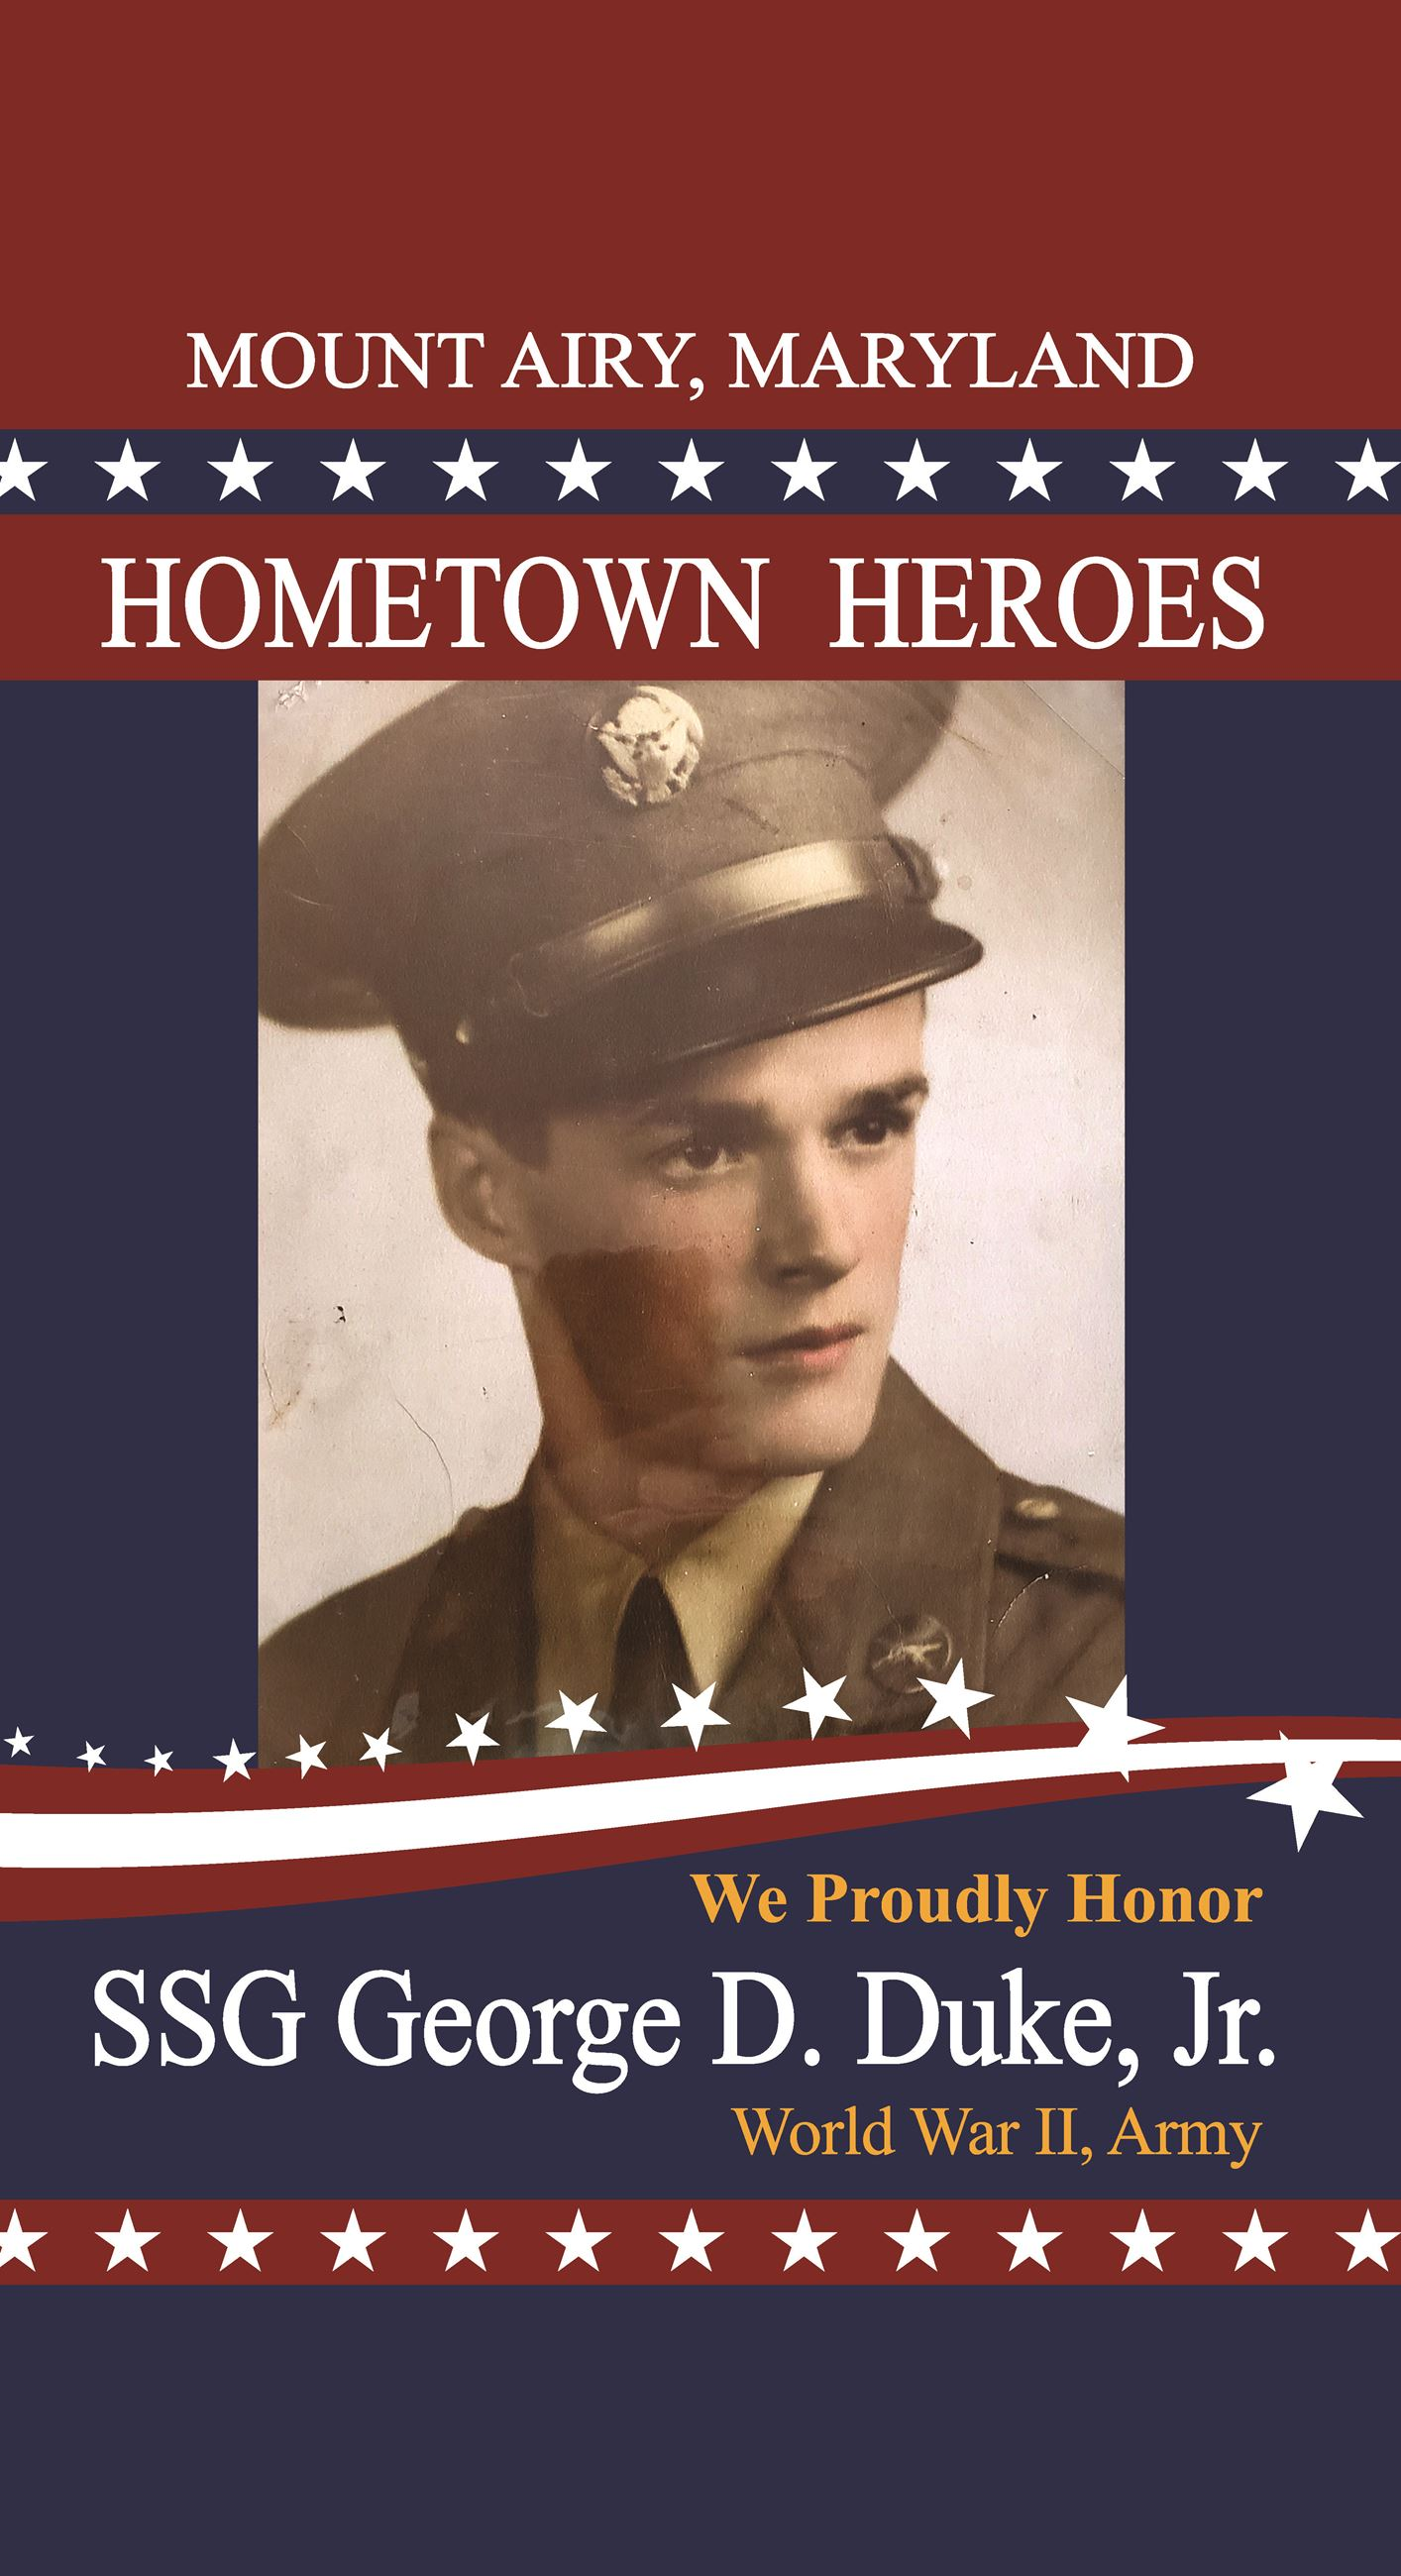 GeorgeDDukeJr_MtAiryHeroes-Flag-24x44-Proof001